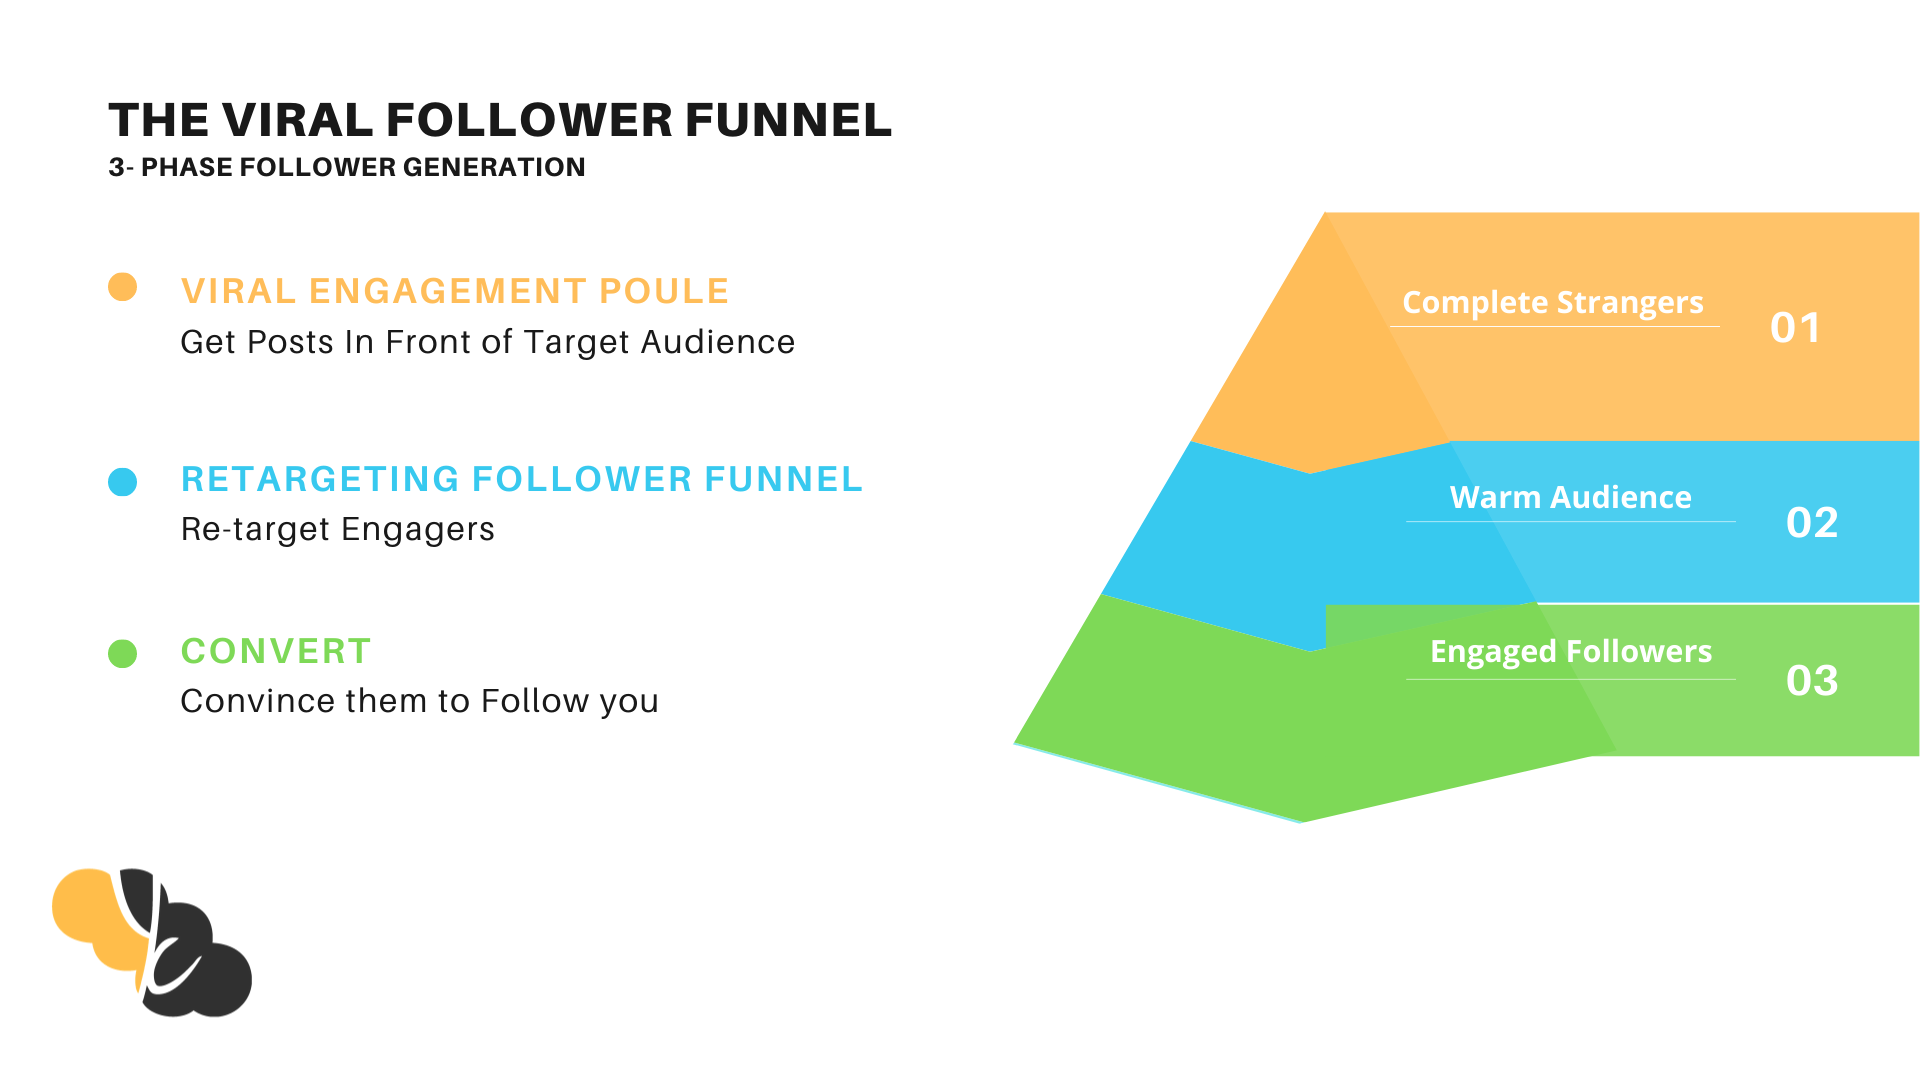 The Viral Follower Funnel